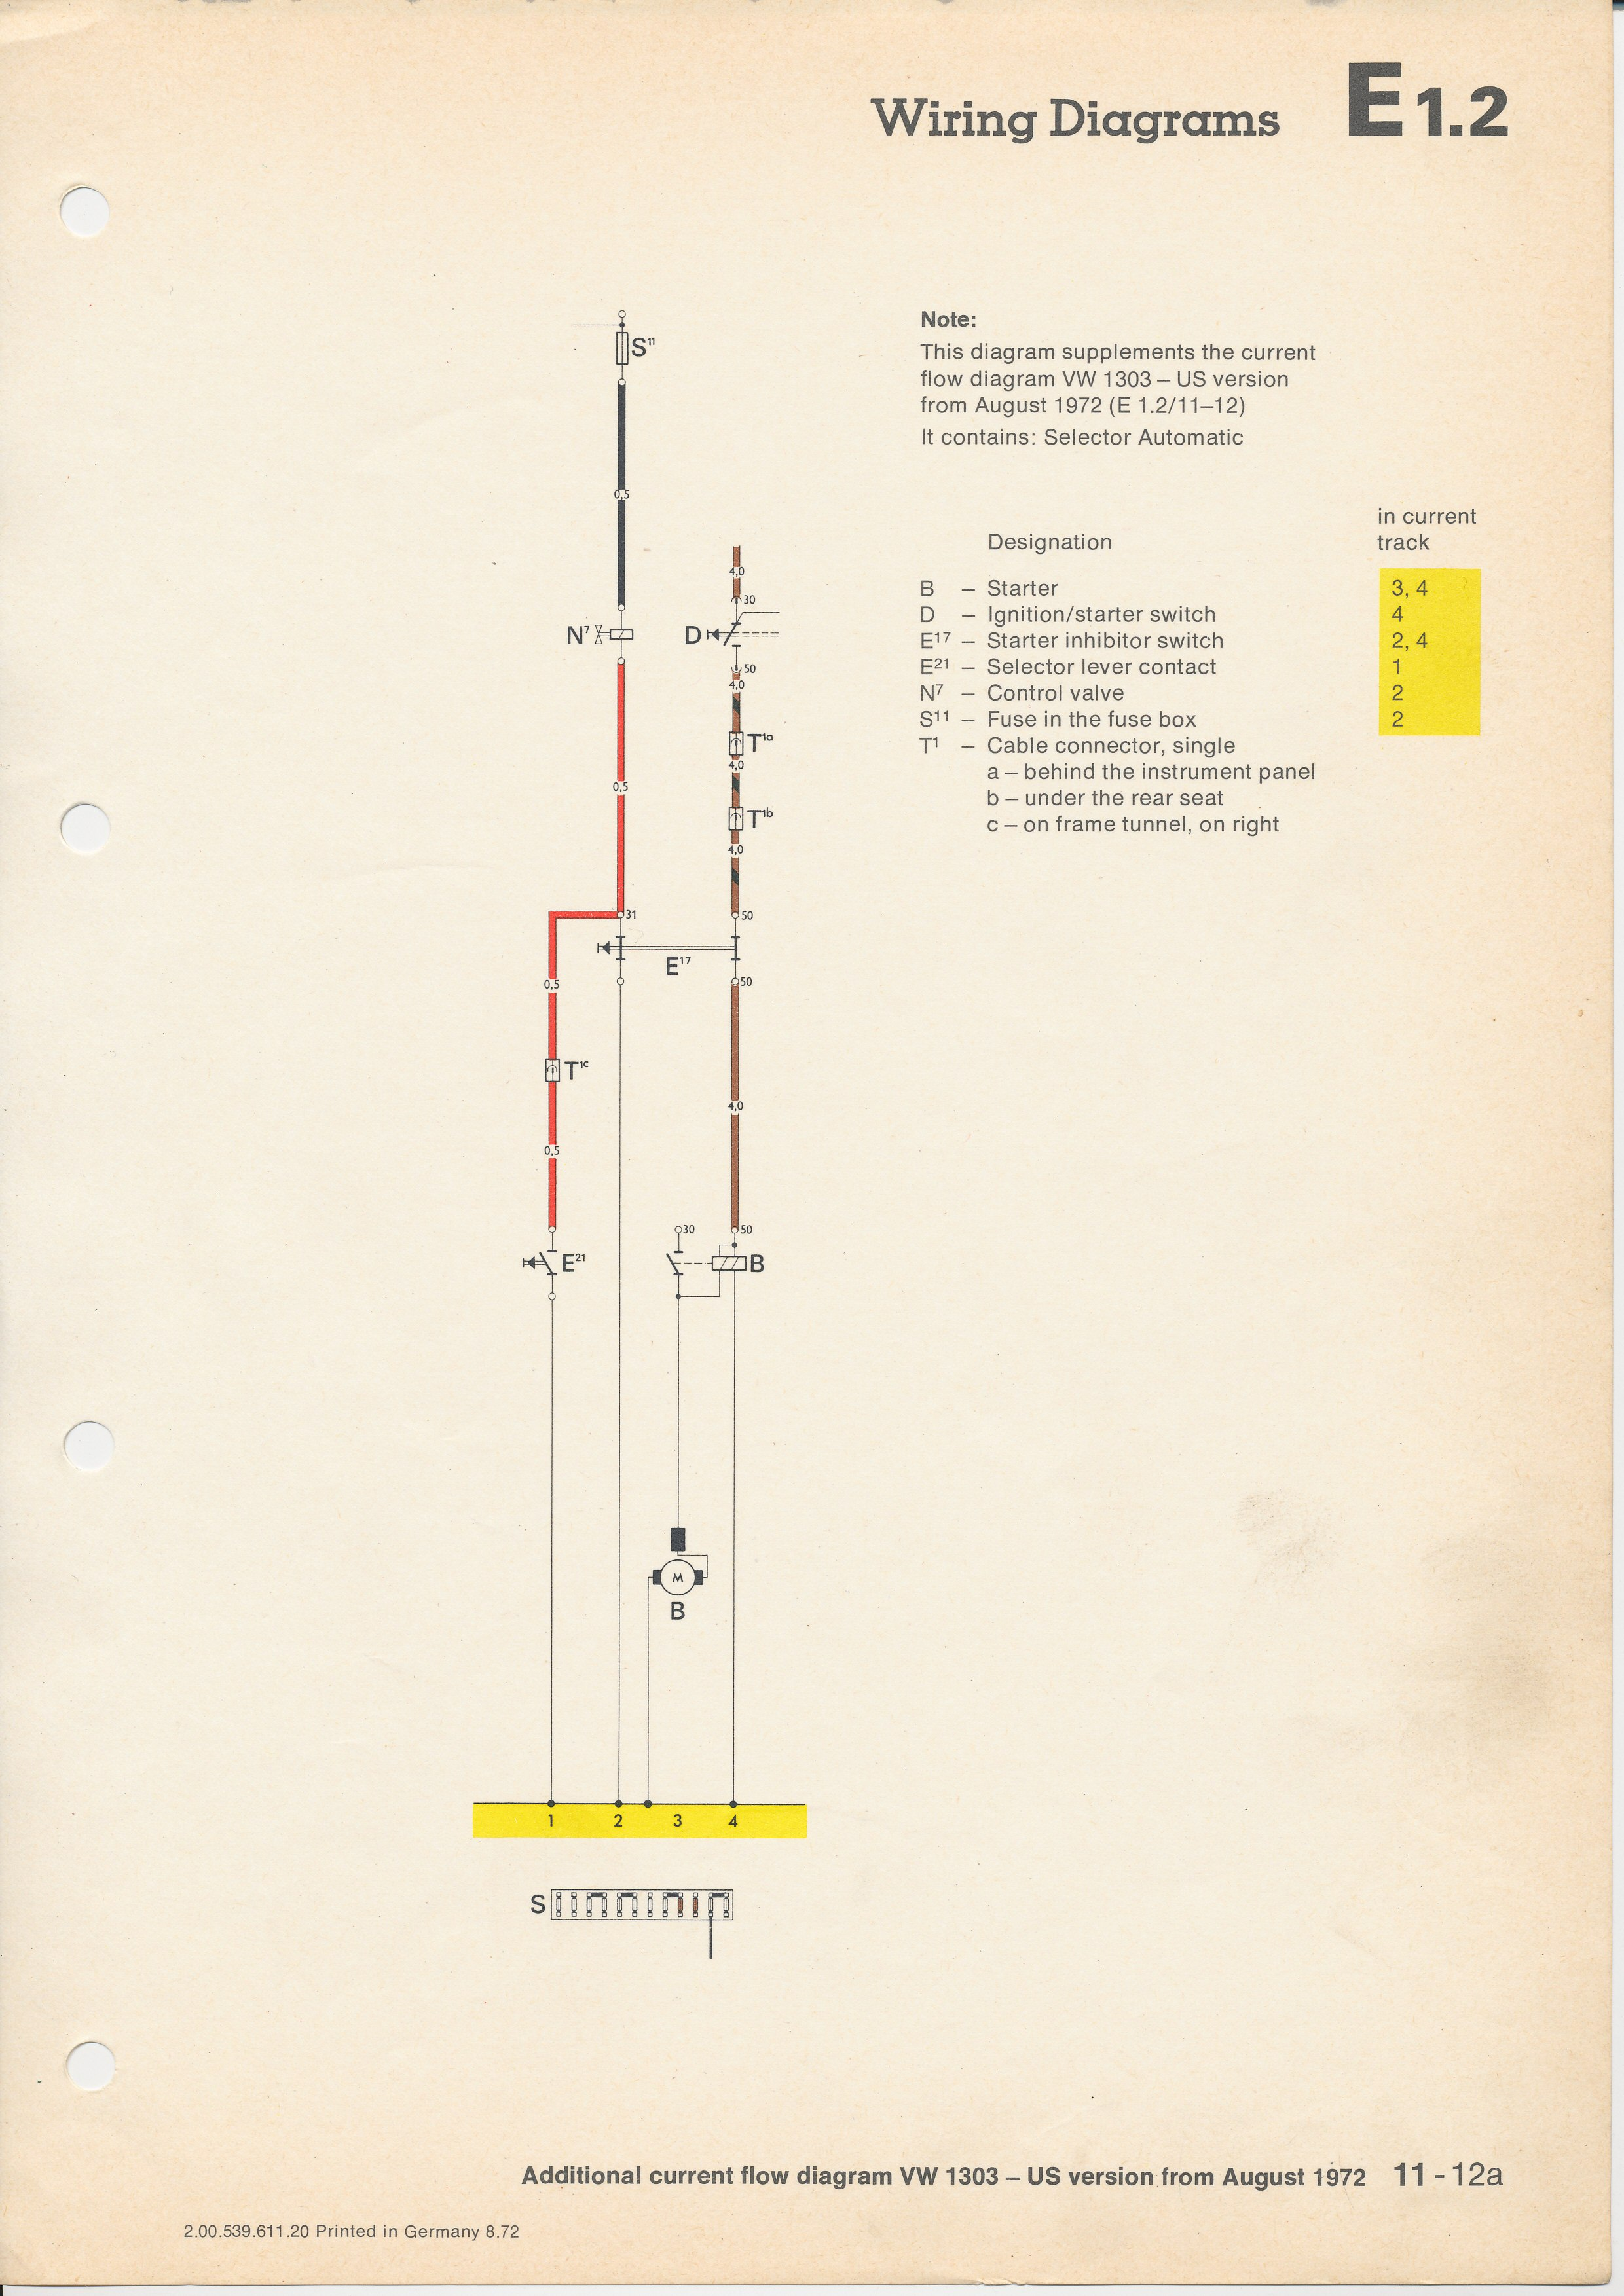 Rx 8411 Fuse Box Diagram In Addition Vw Beetle Wiring Diagram In Addition Vw Wiring Diagram